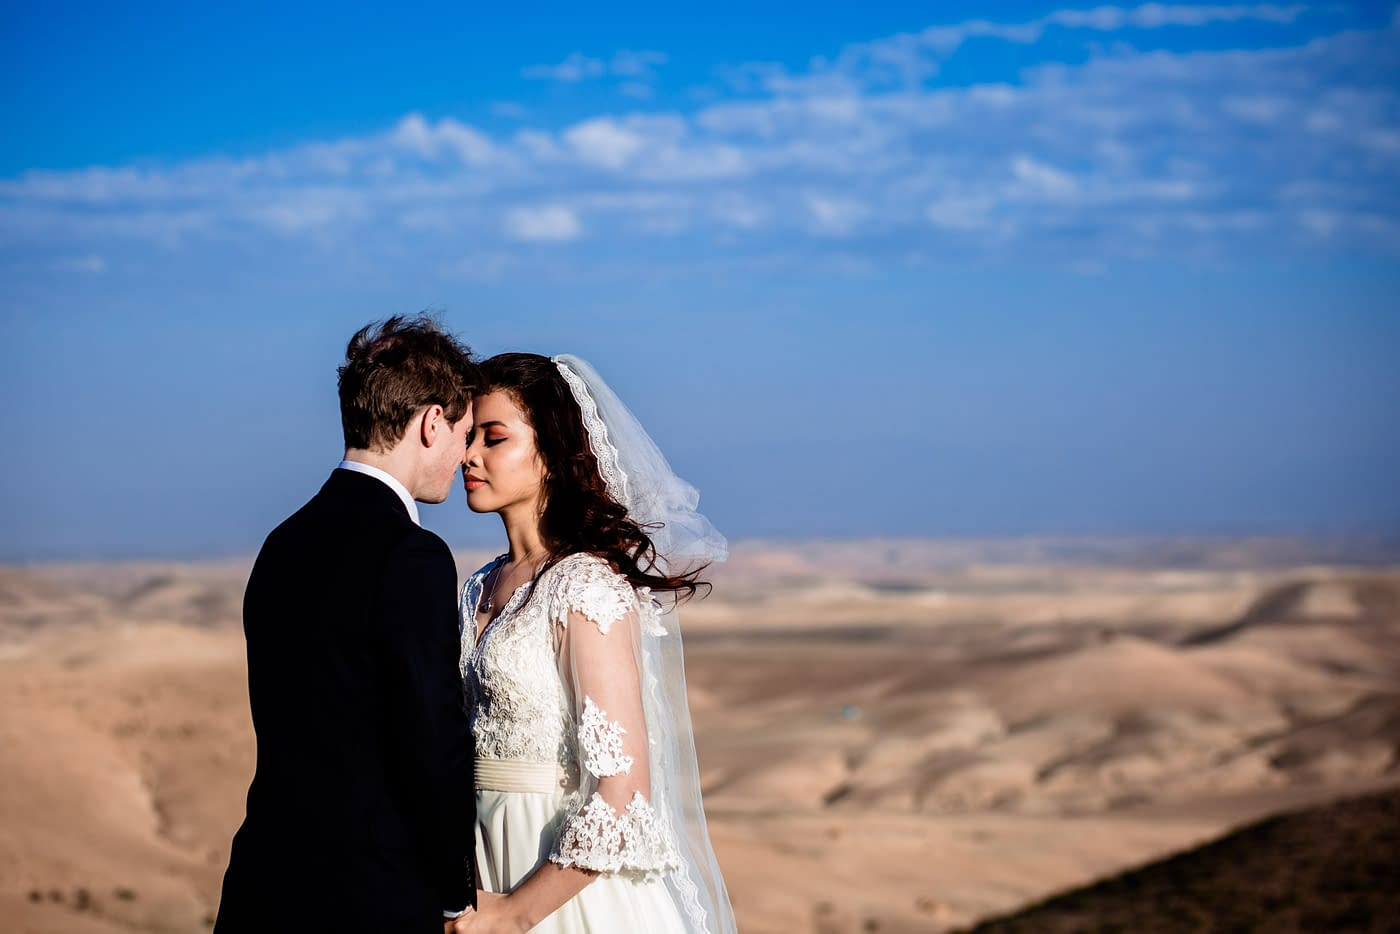 Beautiful Destination Wedding photography in Agafay Desert Marrakech